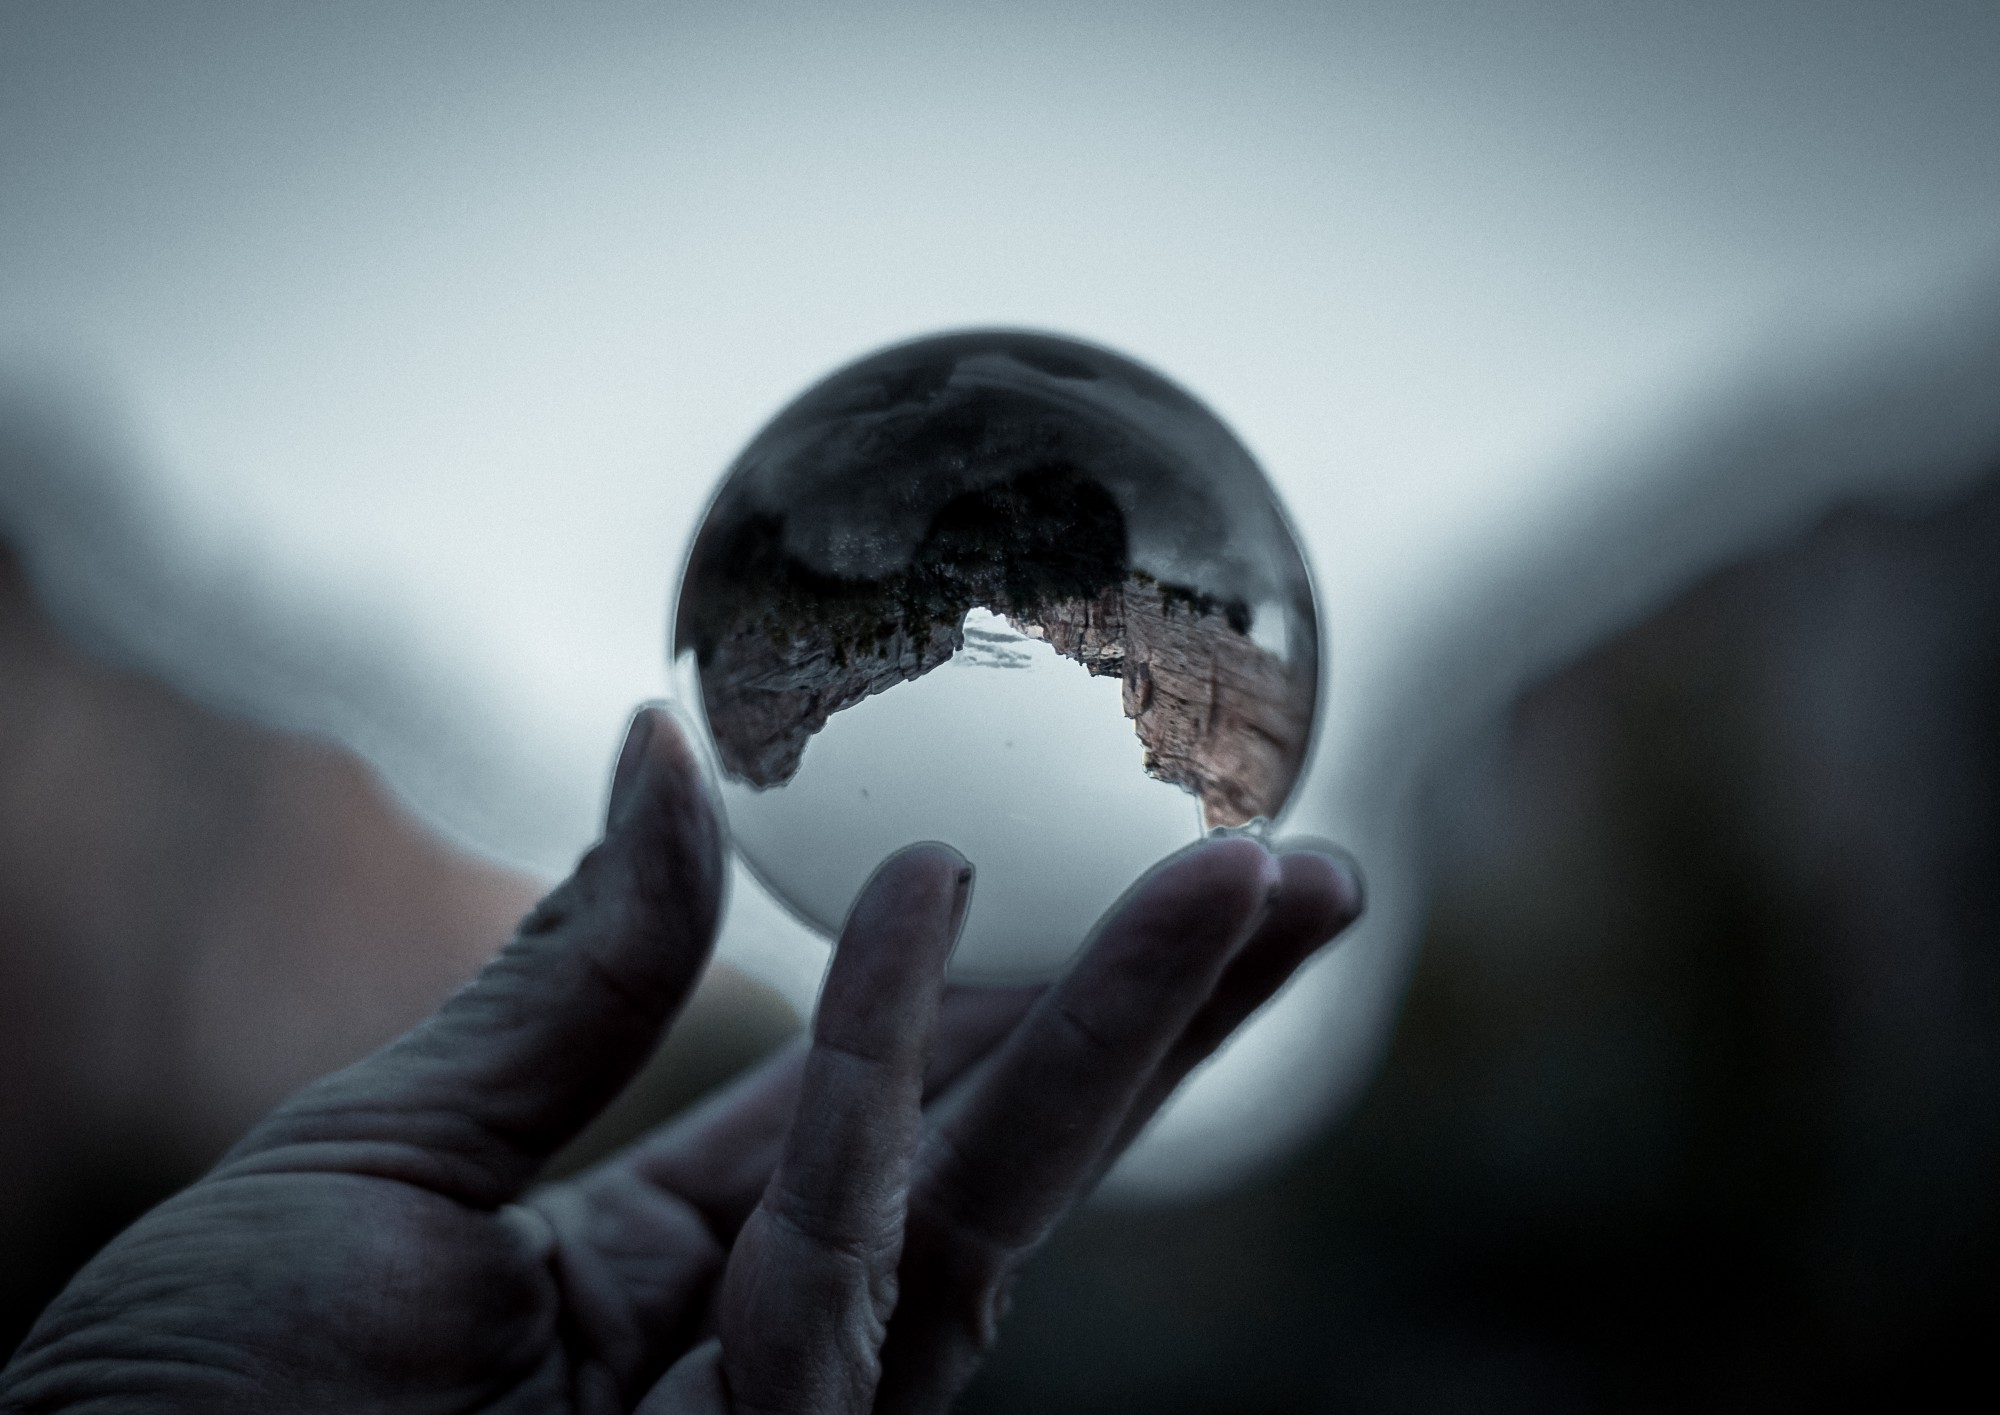 Glass globe with upside-down perspective